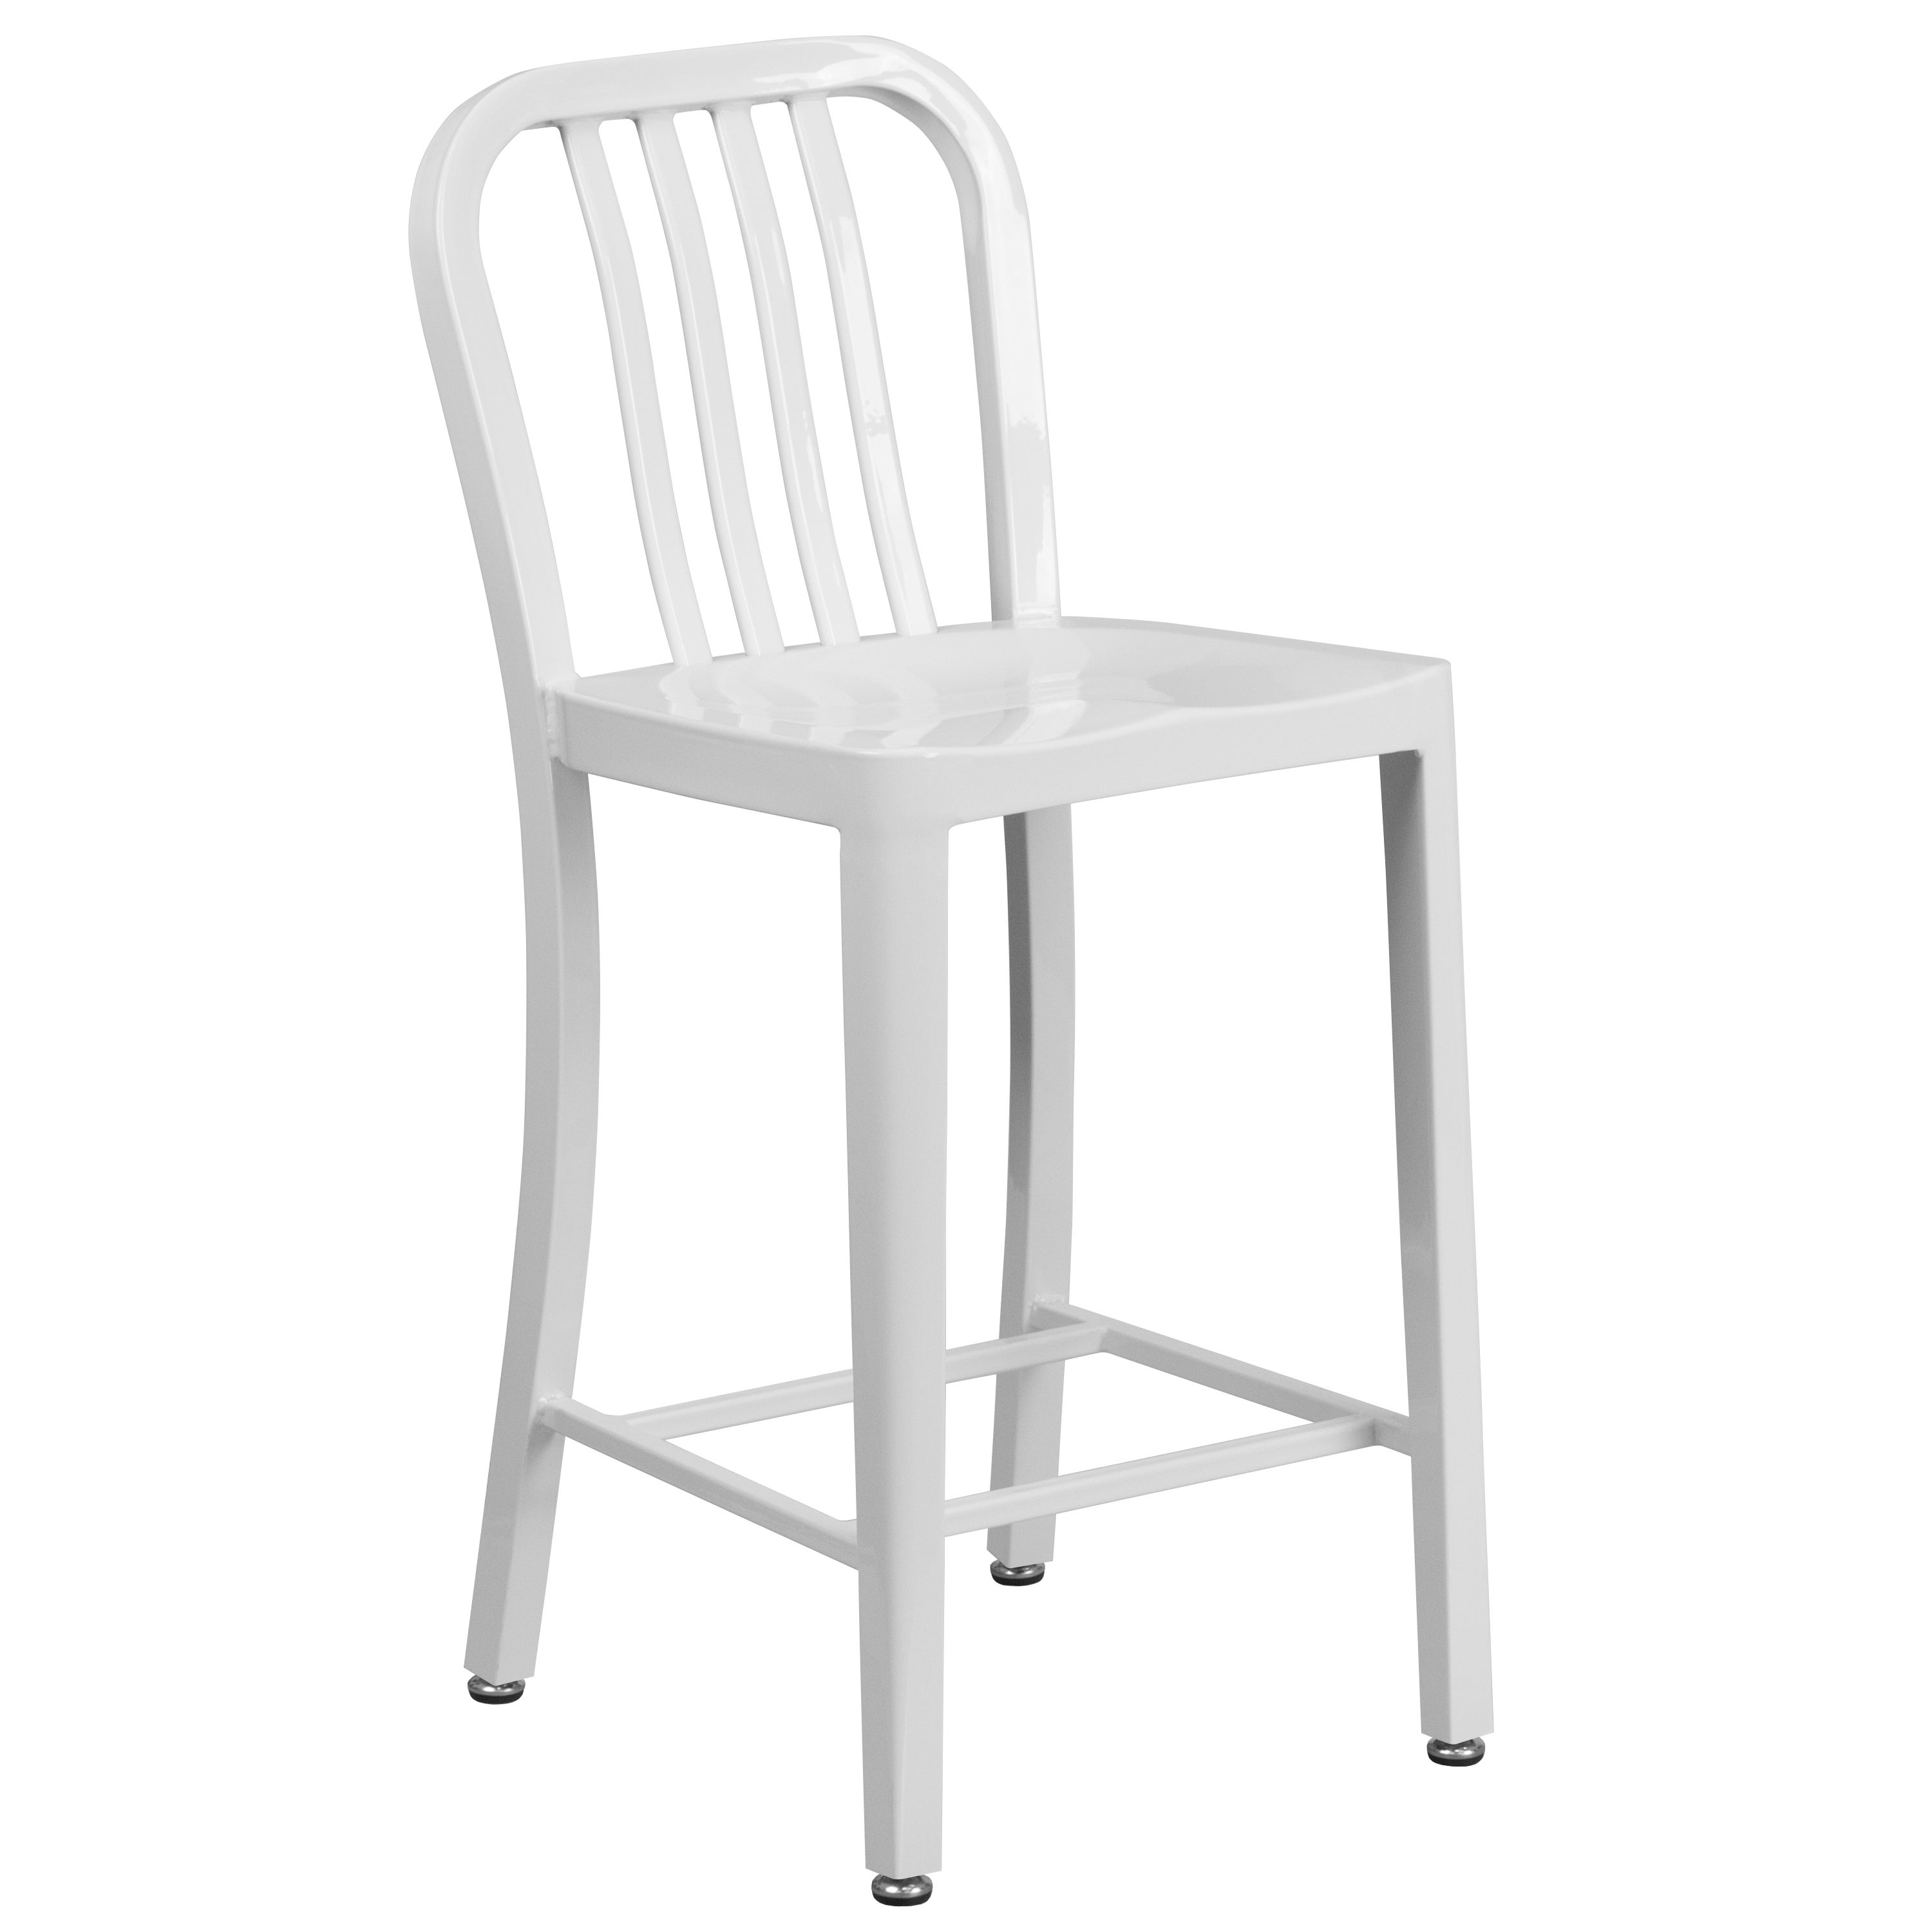 Amazing Veronica Slat Back Design White Metal Counter Stools Pabps2019 Chair Design Images Pabps2019Com